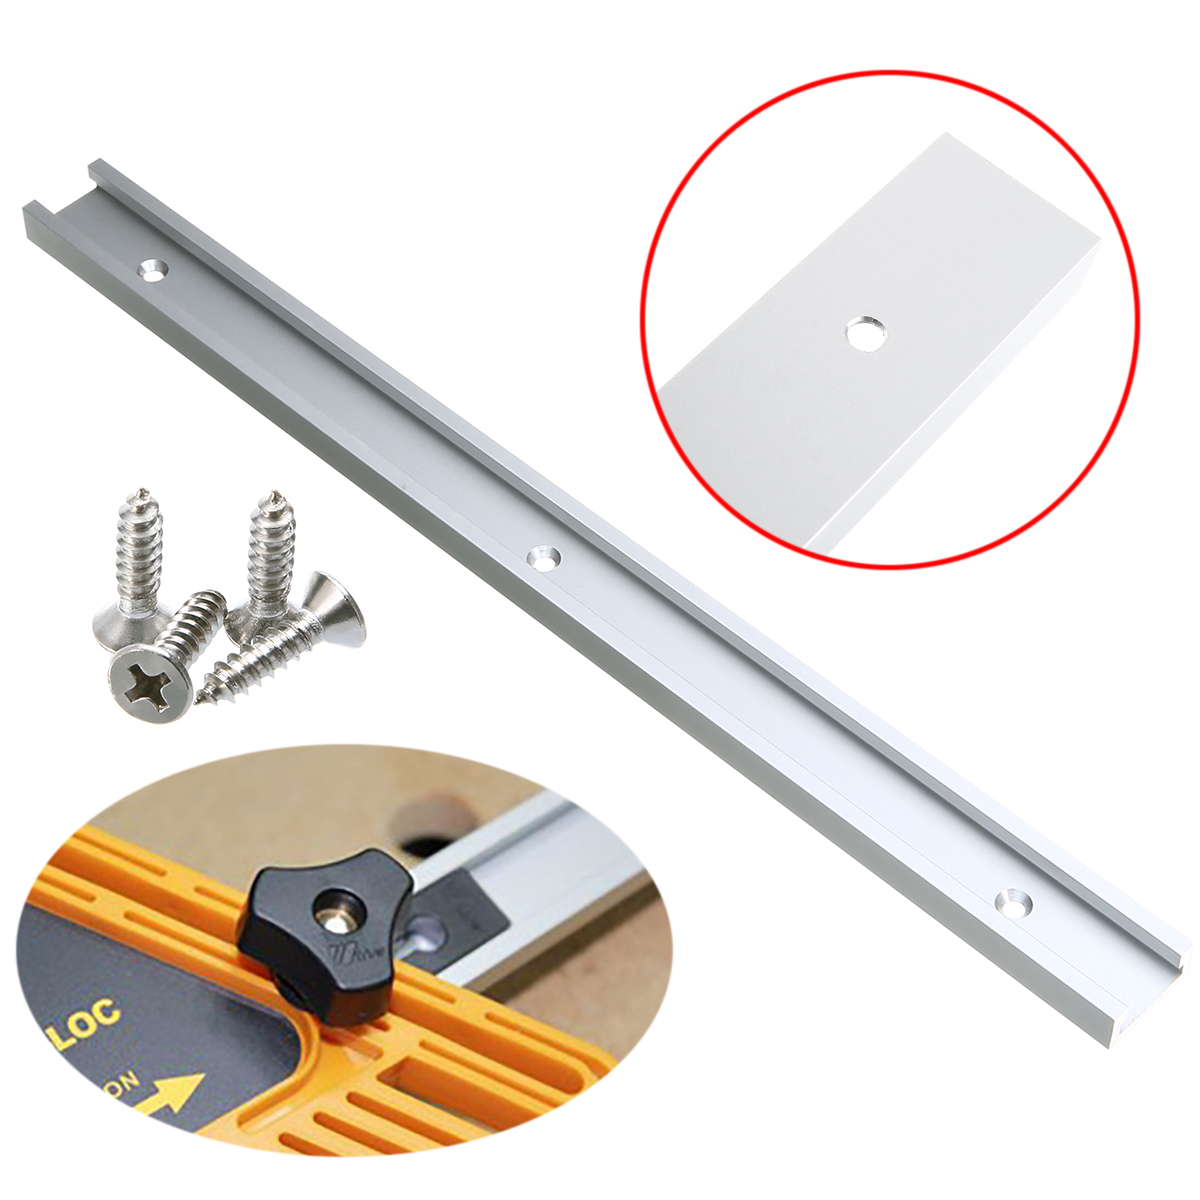 1pc 400mm T-Slot Miter Track Jig Fixture Slot Aluminum For Drill Press Router Table Band Saw